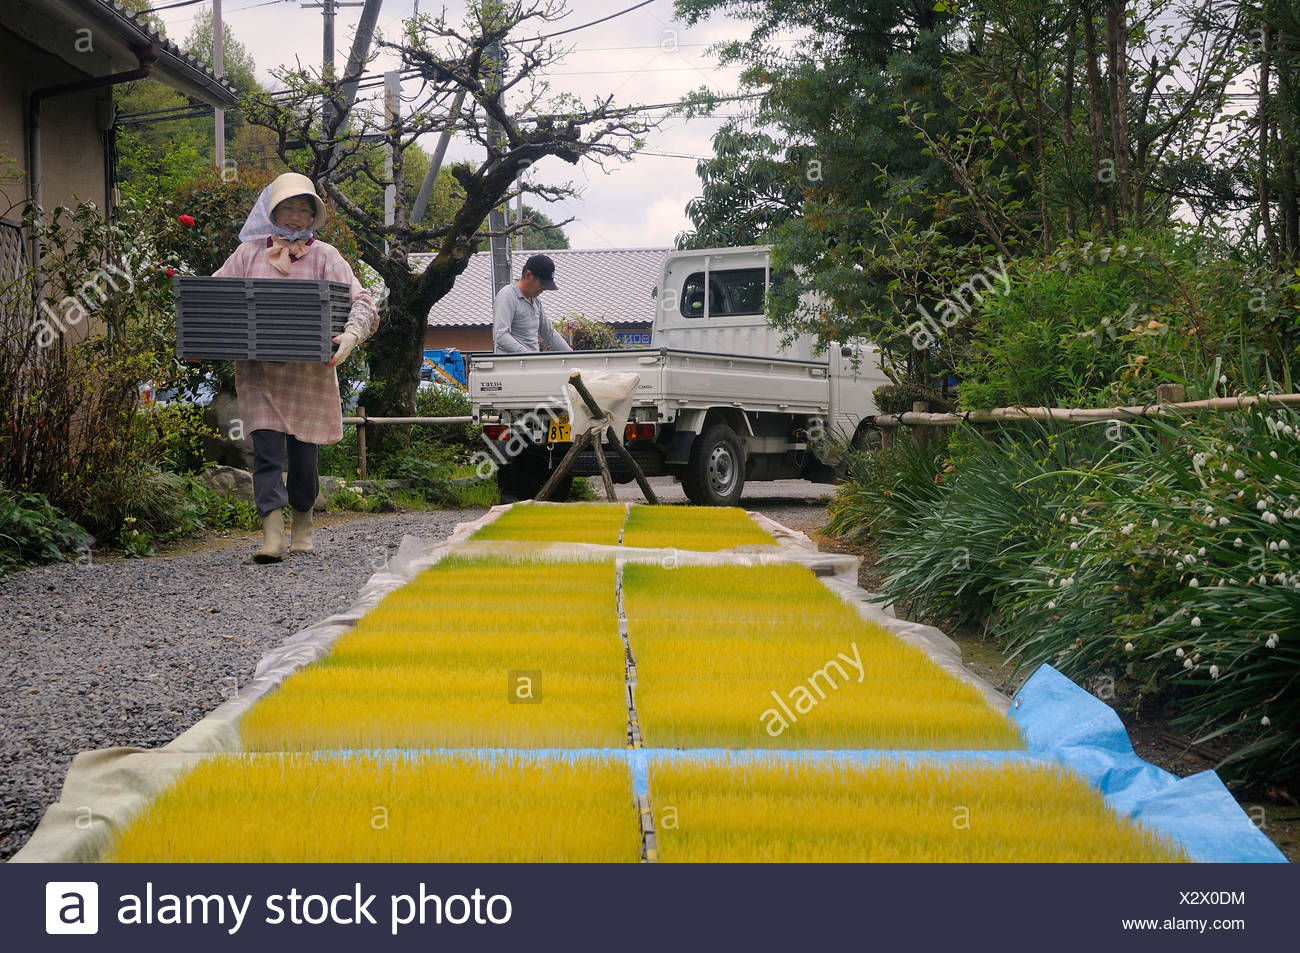 Rice seedlings being placed in the open air, Iwakura, Japan, Asia - Stock Image